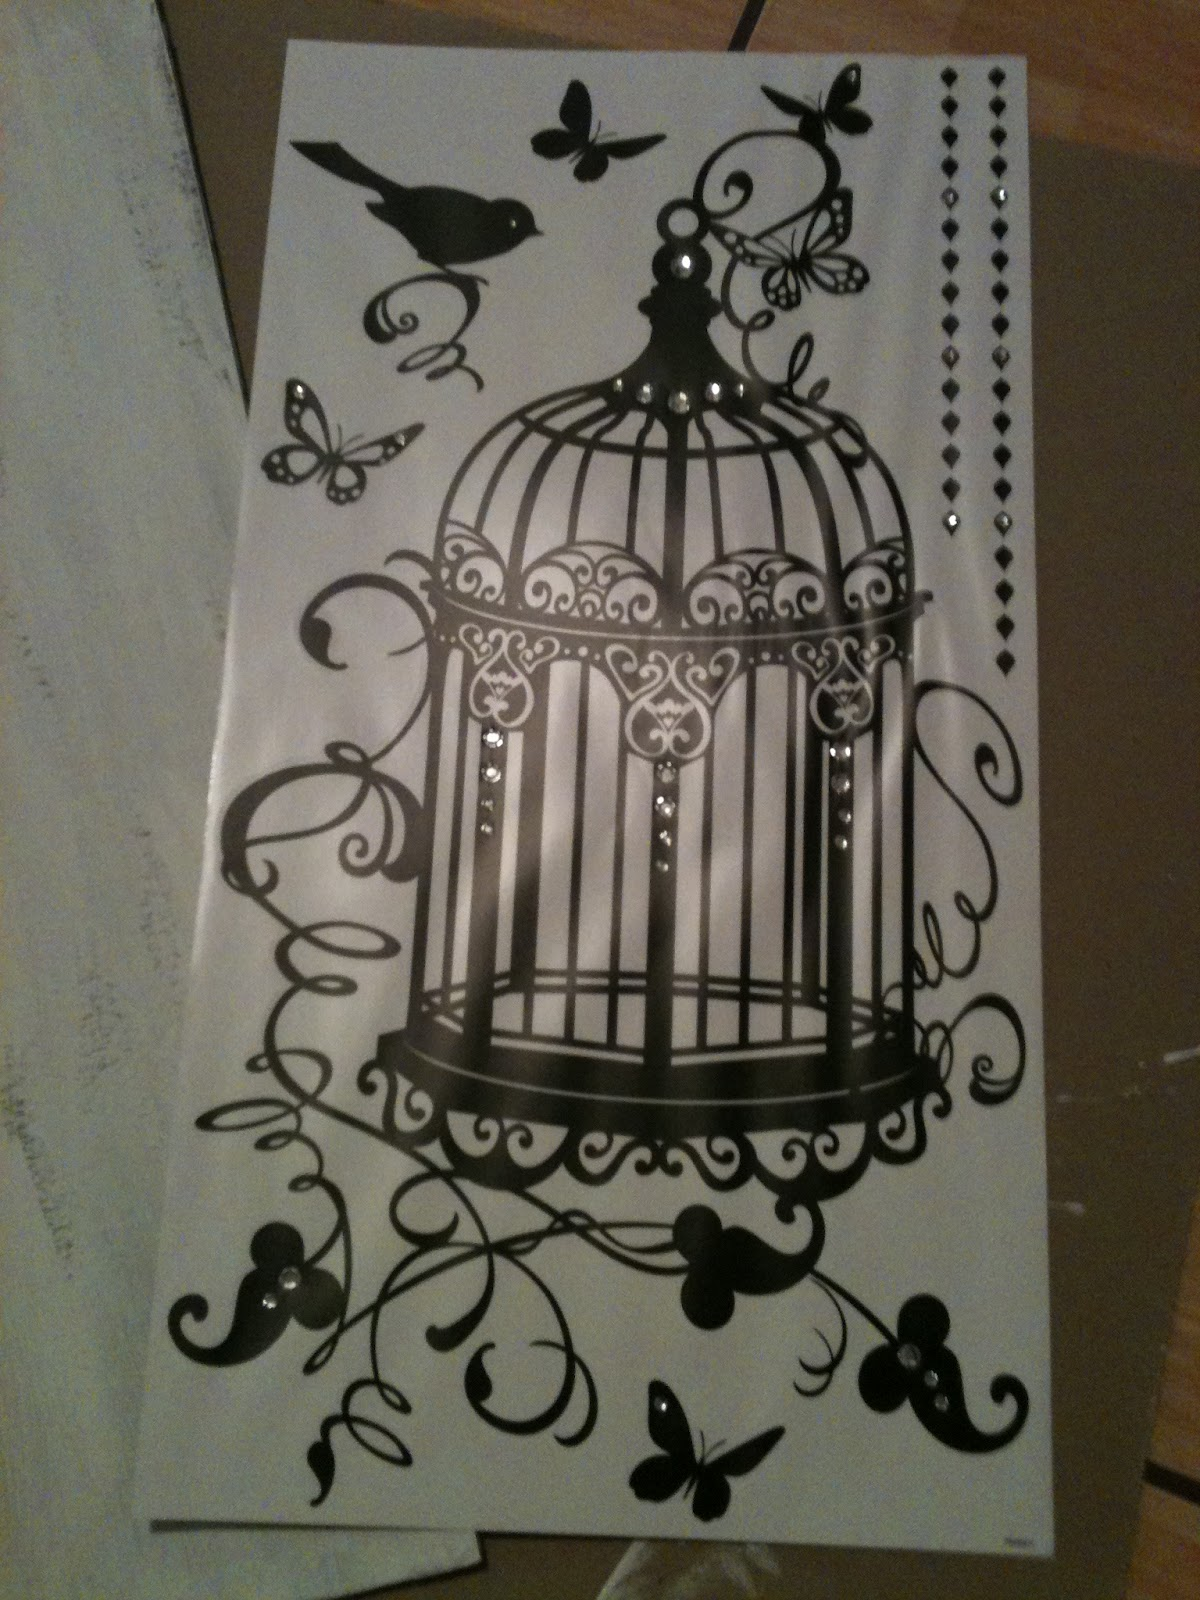 Antique bird cage drawing - photo#6